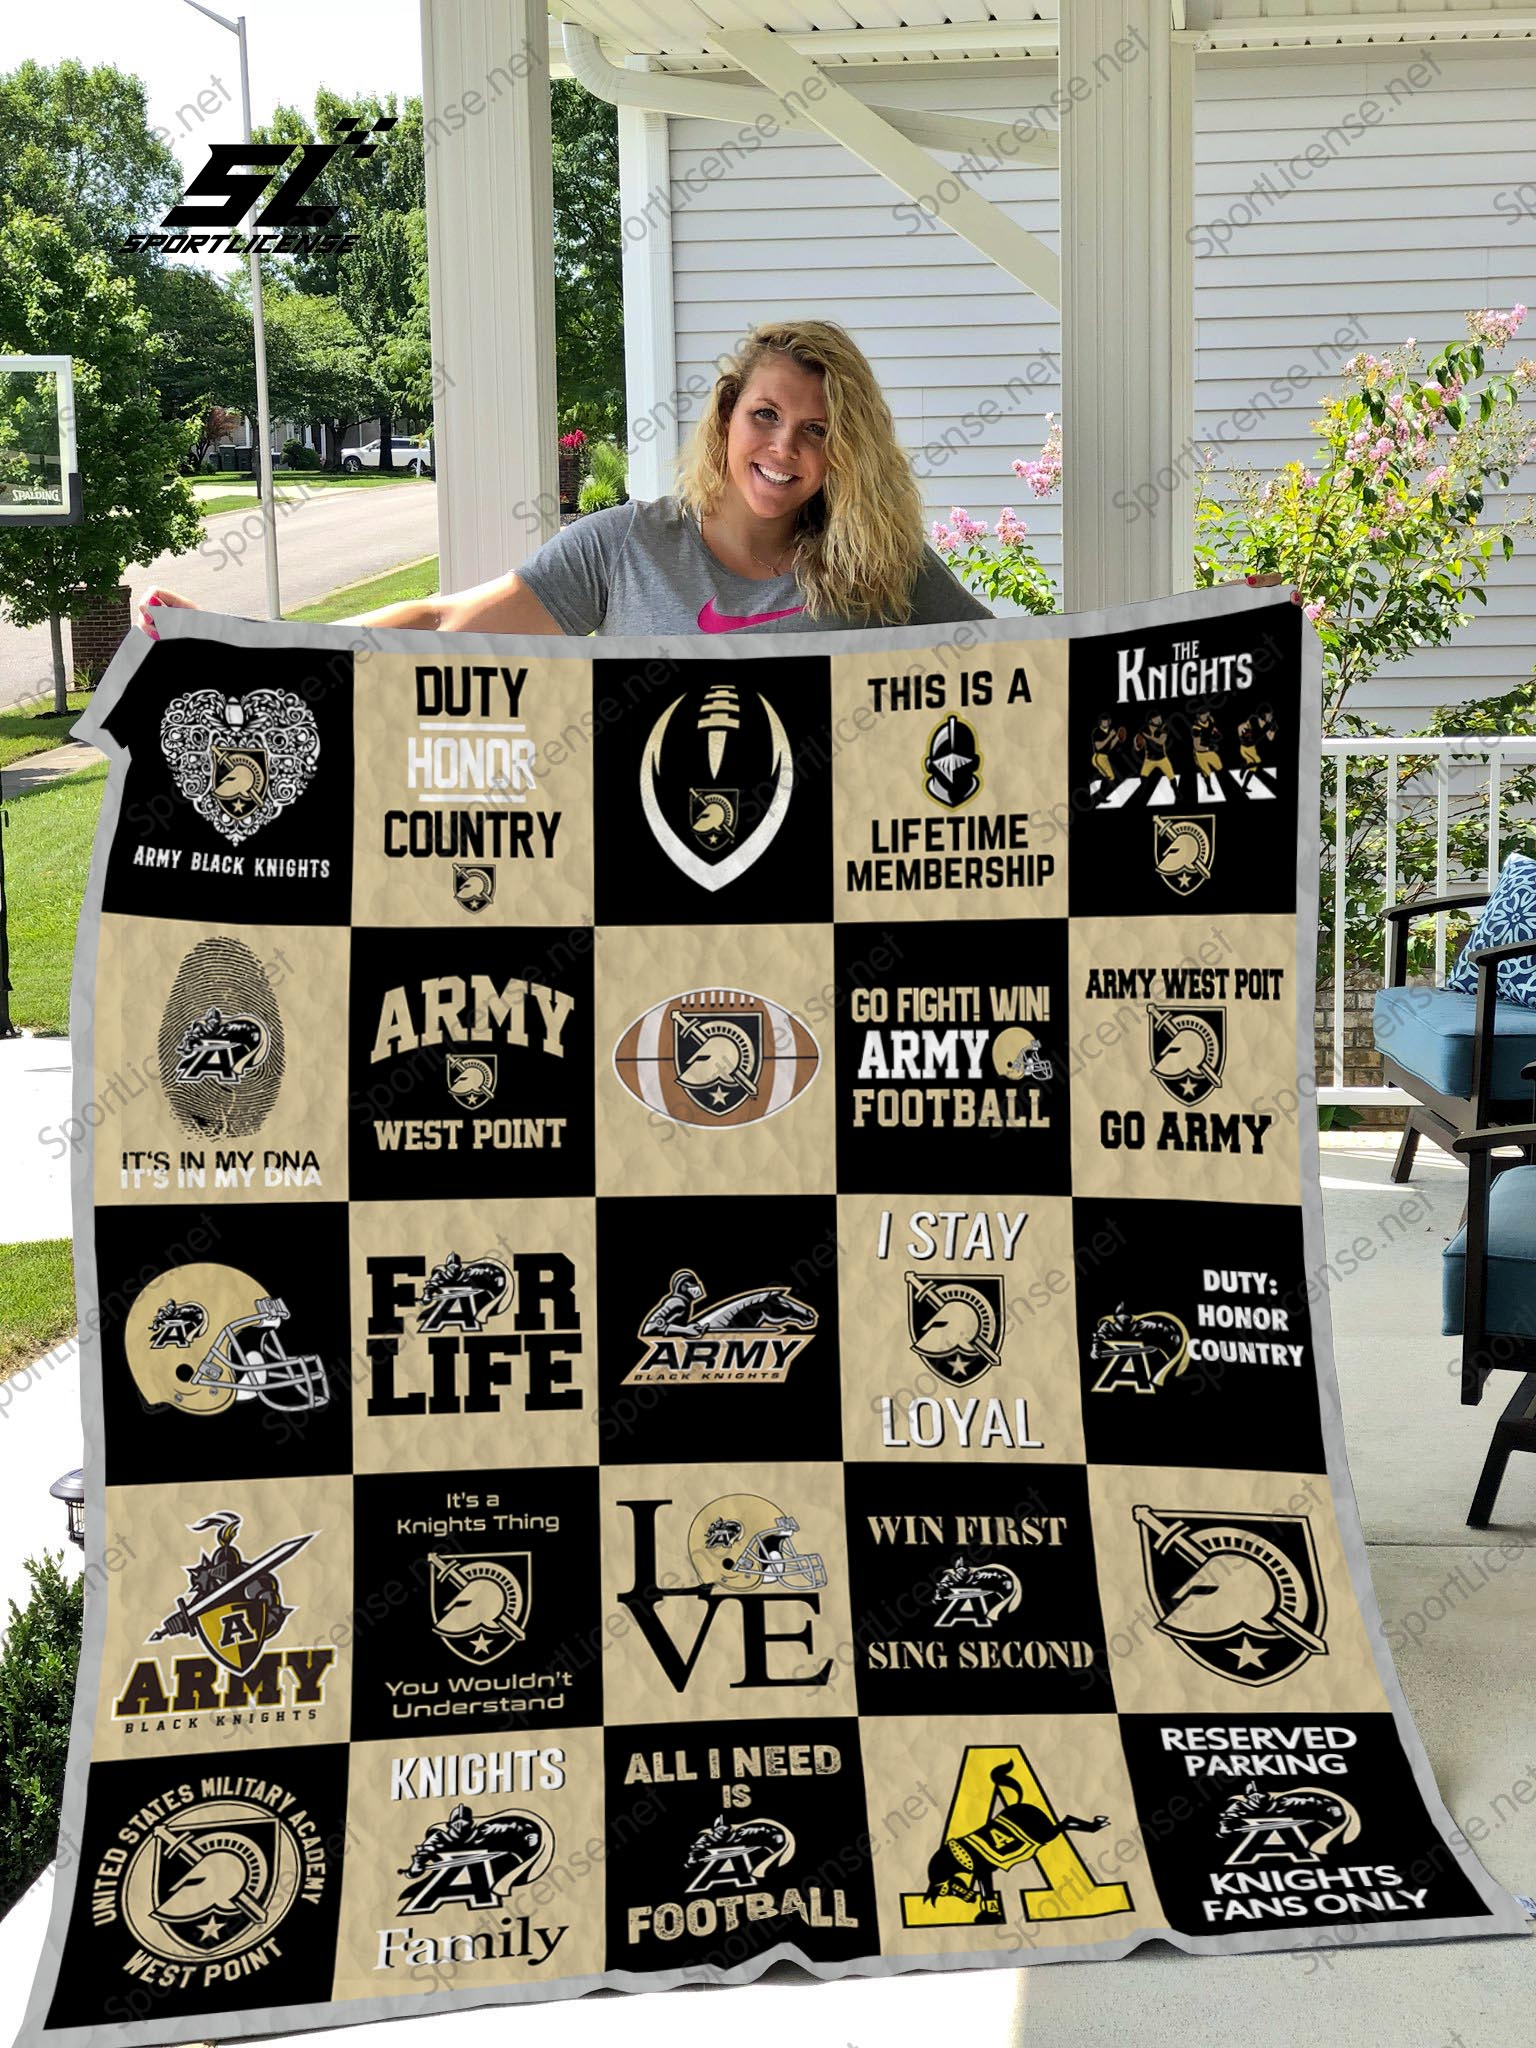 Army west point black knights quilt 4